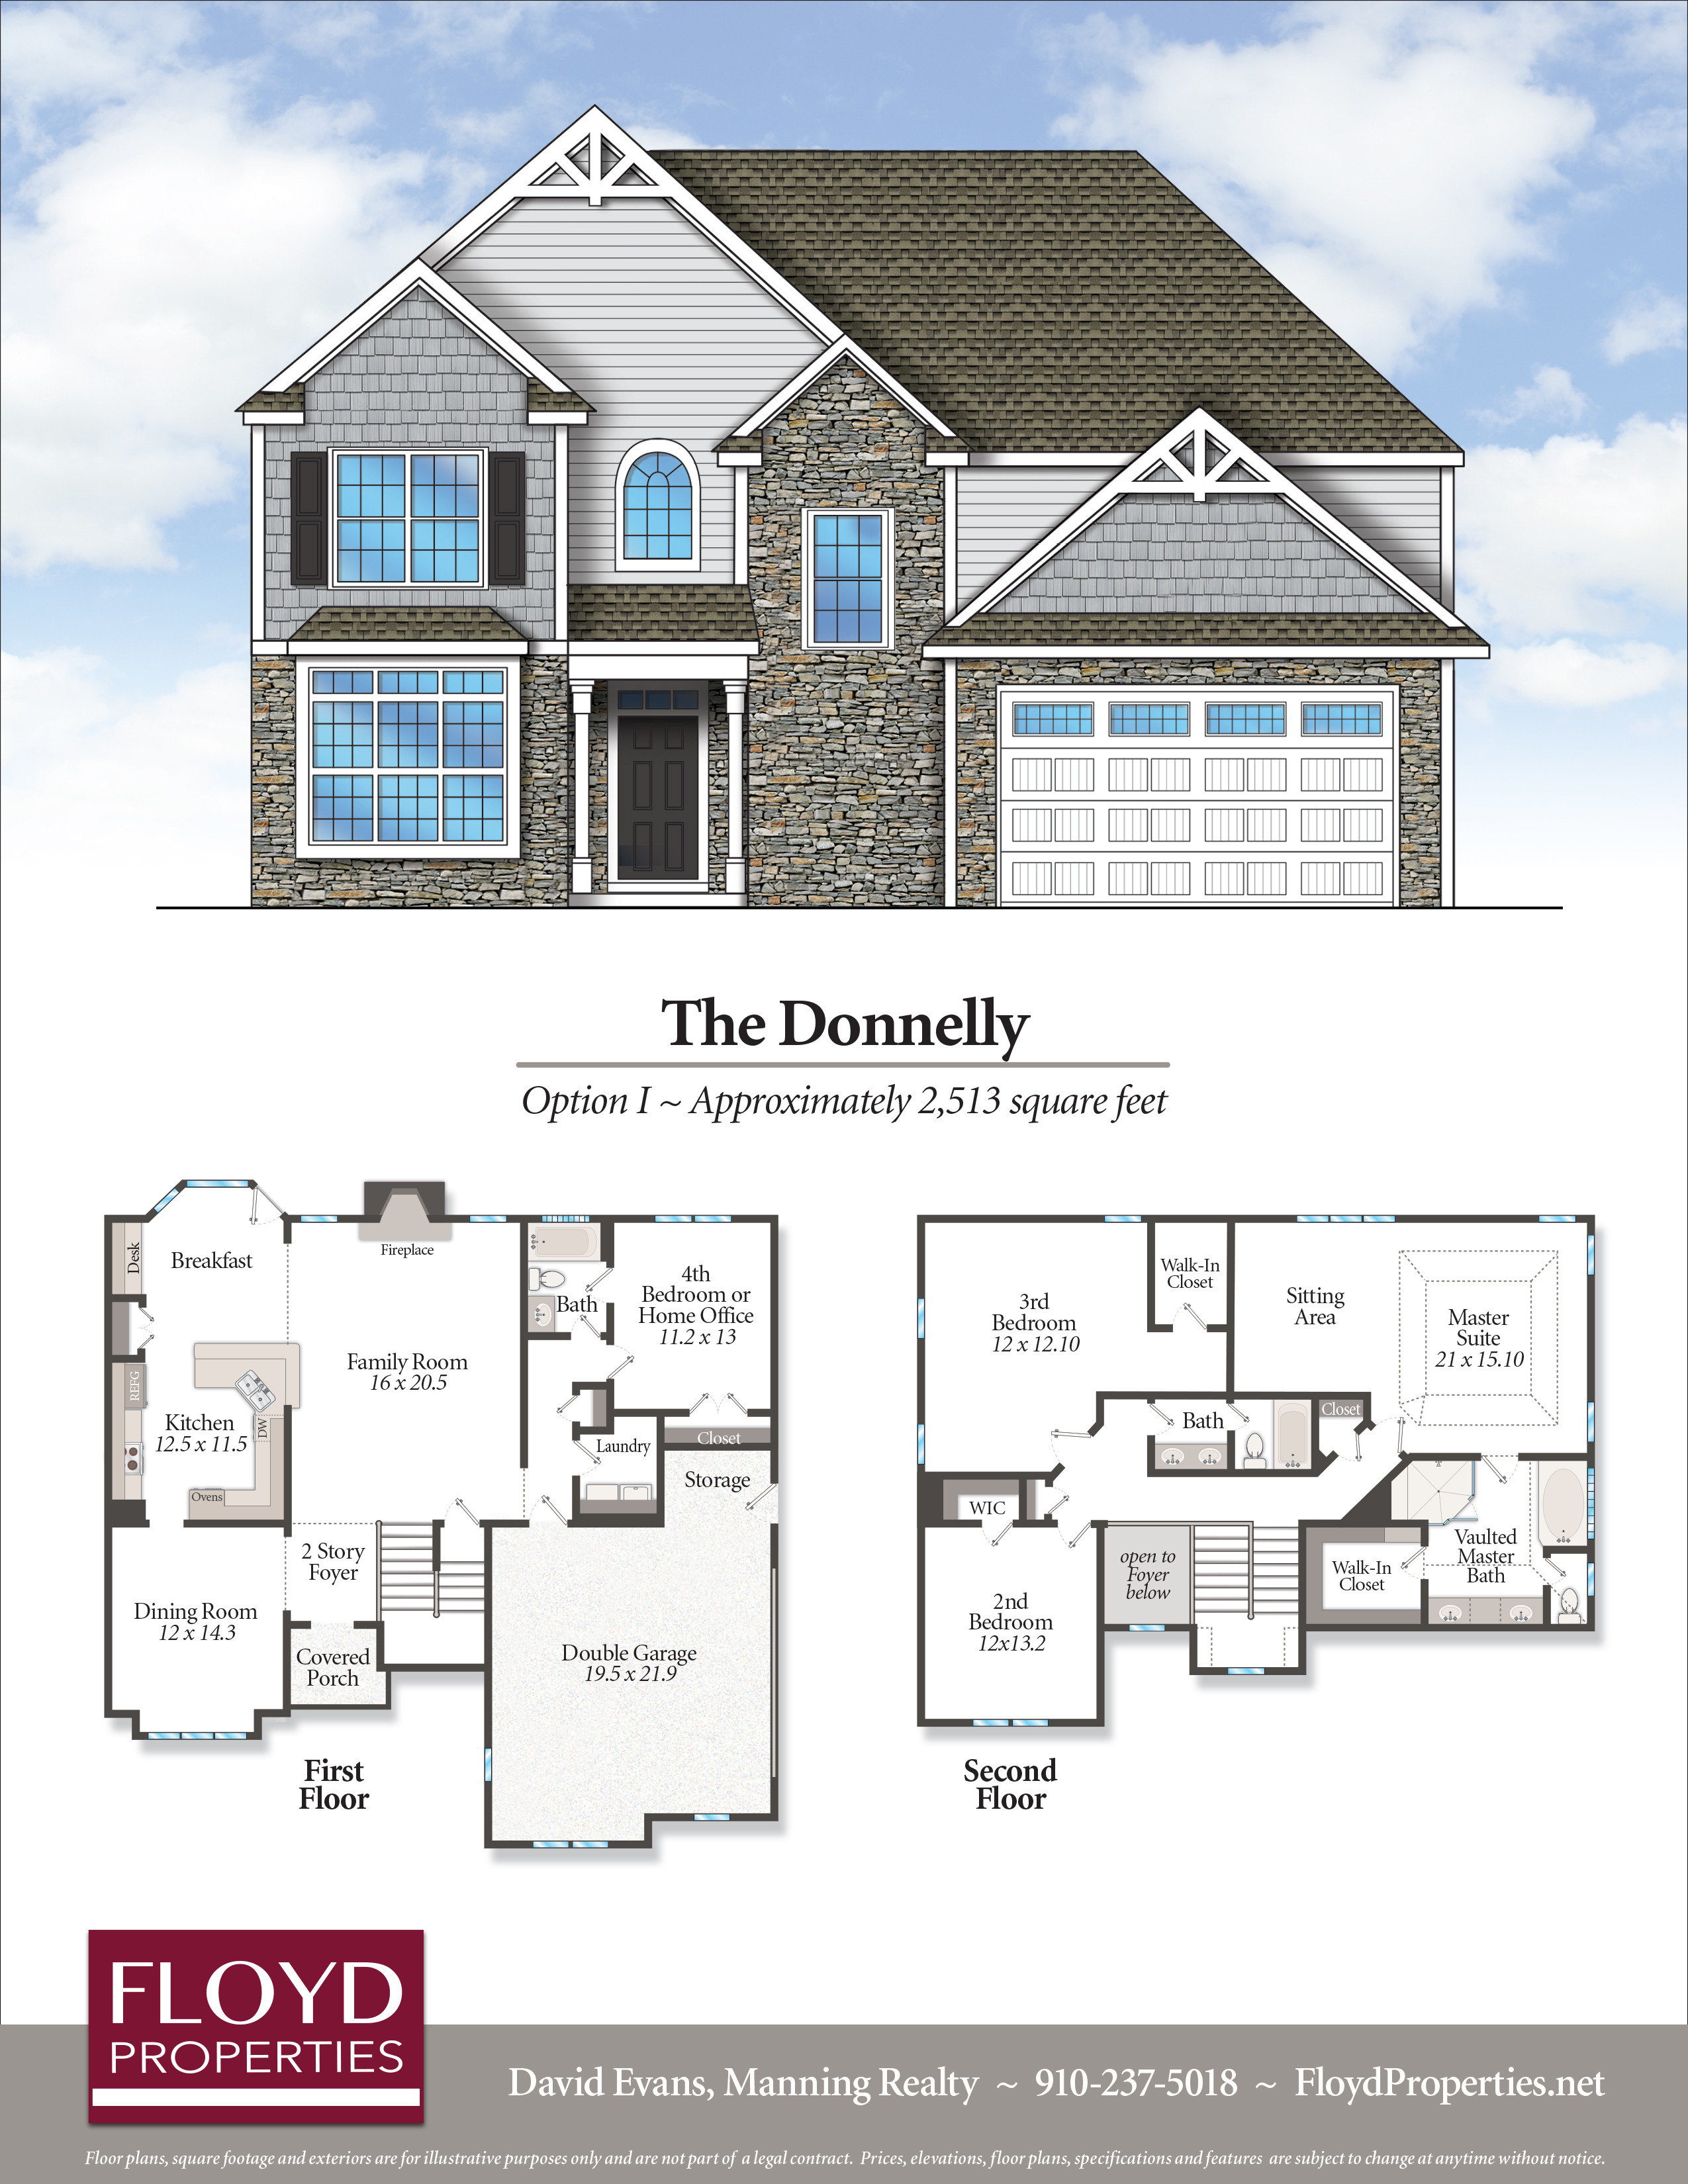 House and Floor Plans Best Of House Floor Plans Ready to Build or Customizable Floyd